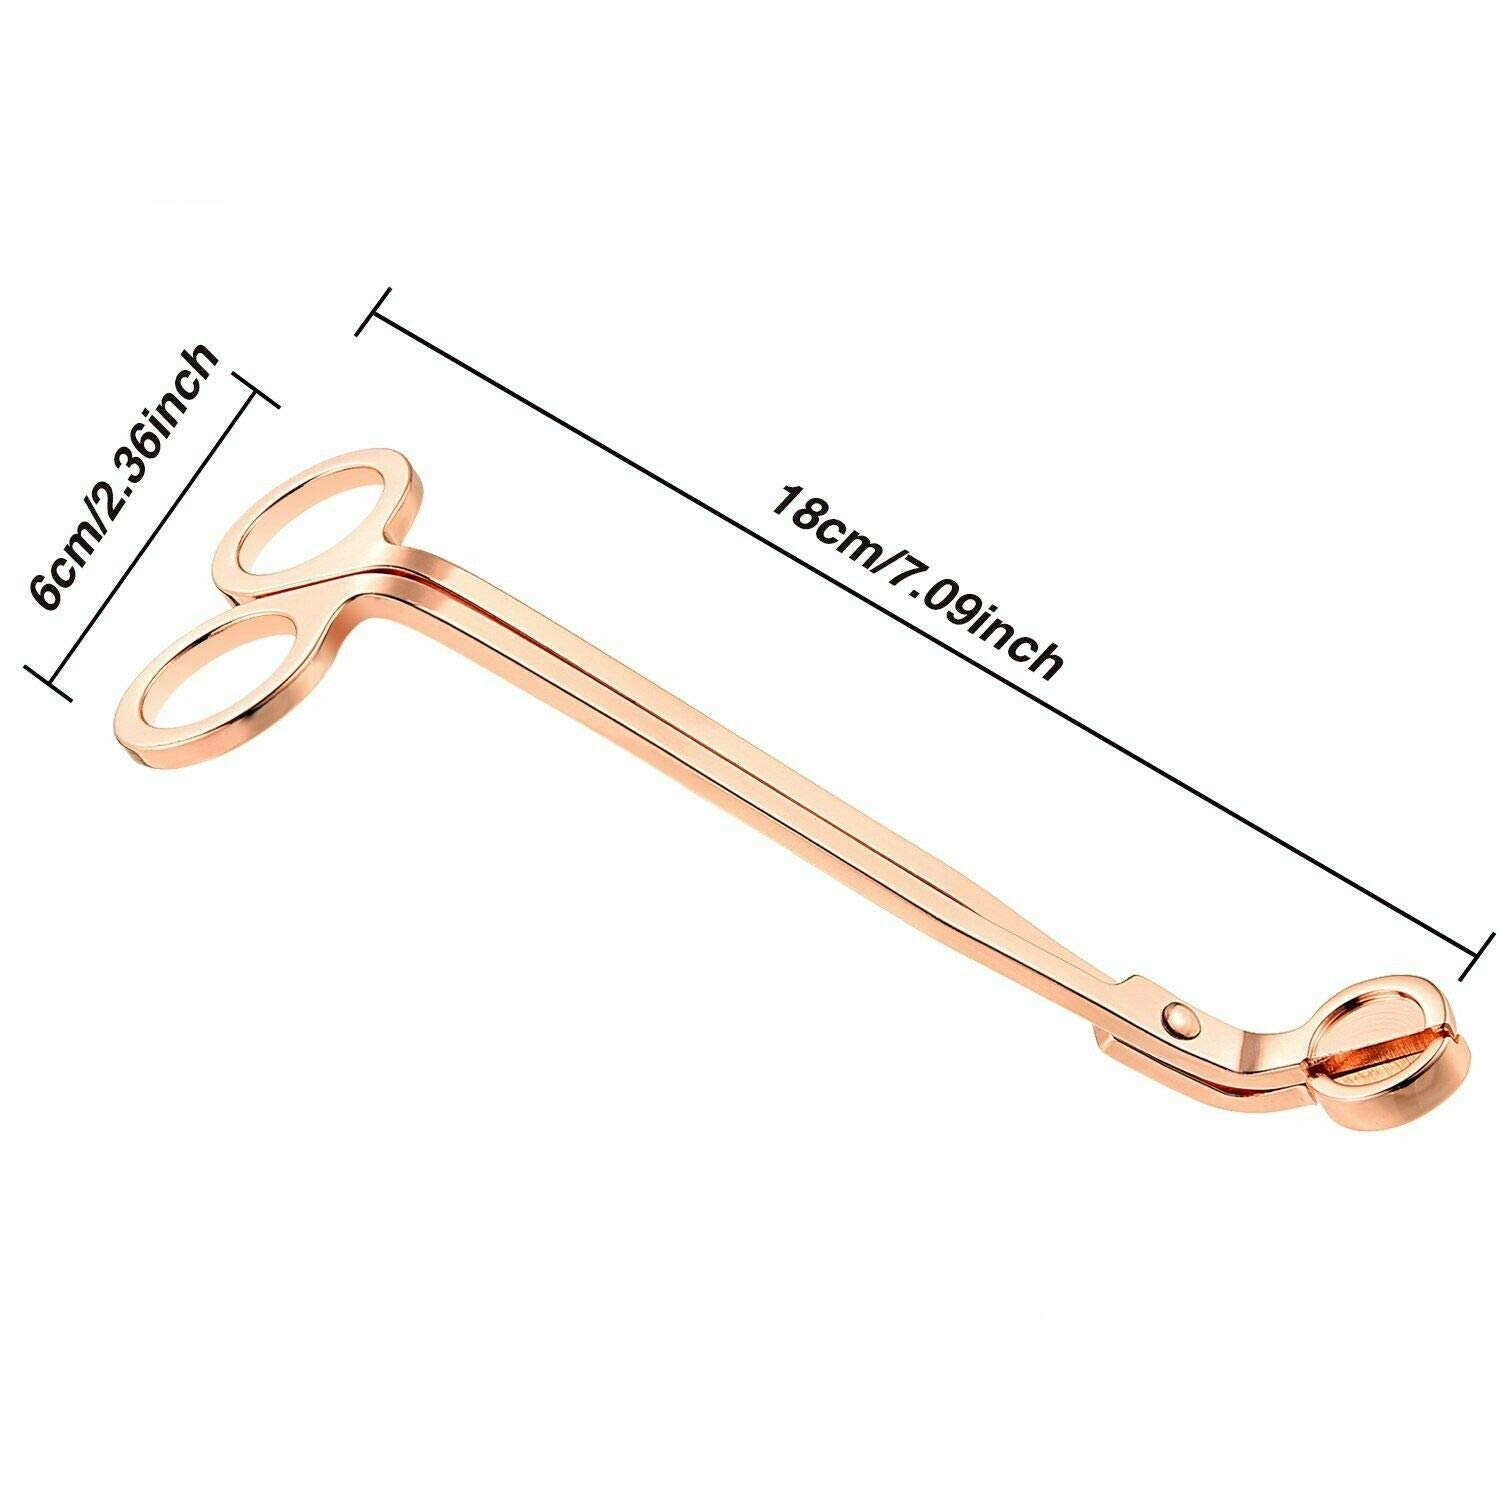 Wick Trimmer Set Candle Tool Upgrade Candle Scissors 2Pcs Rose Gold Stainless Steel Candle Wick Cutter N//V Candle Wick Trimmer